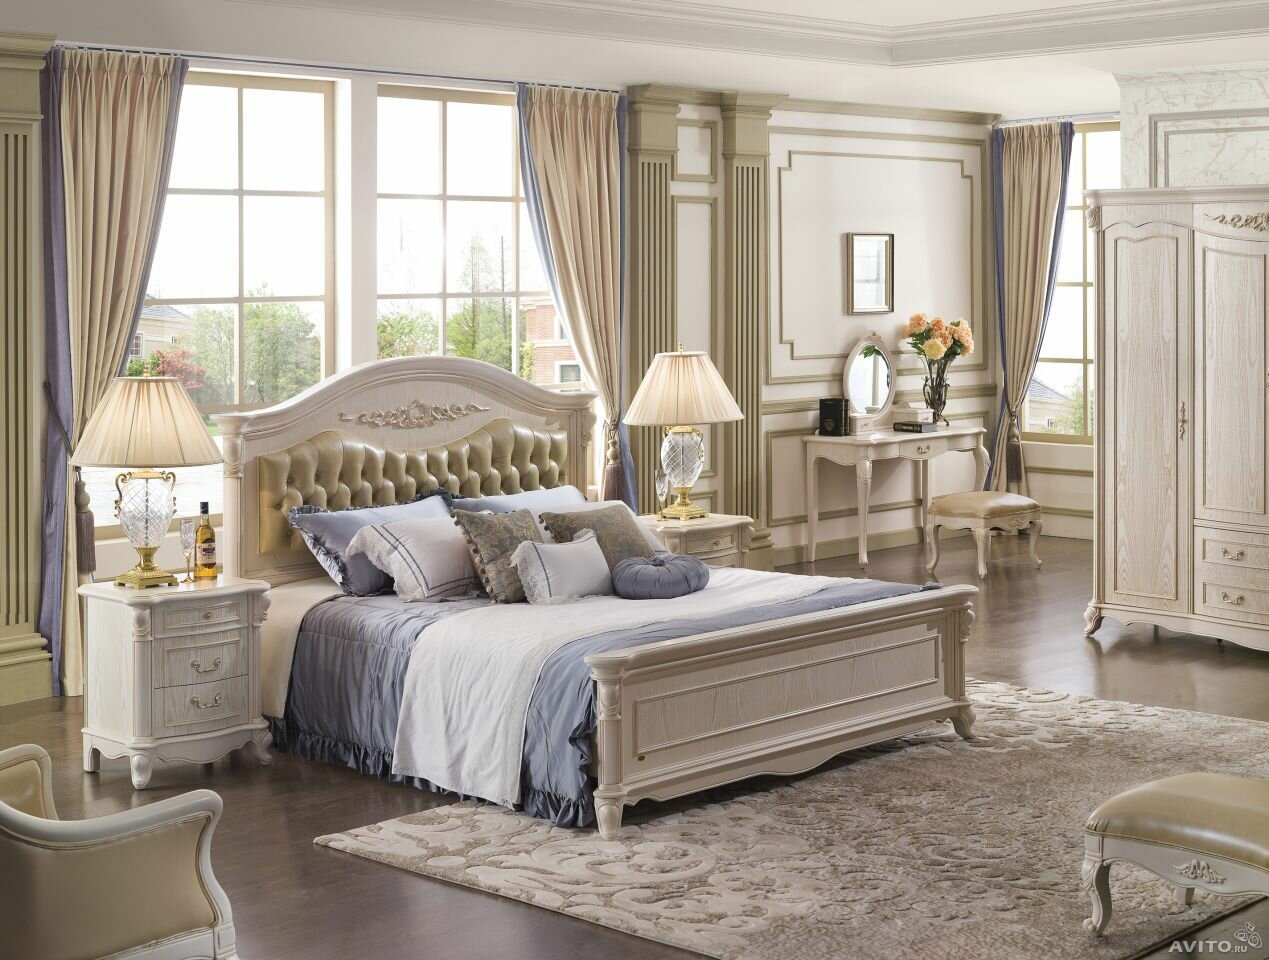 15 world 39 s most beautiful bedrooms mostbeautifulthings for Beautiful bedroom pics